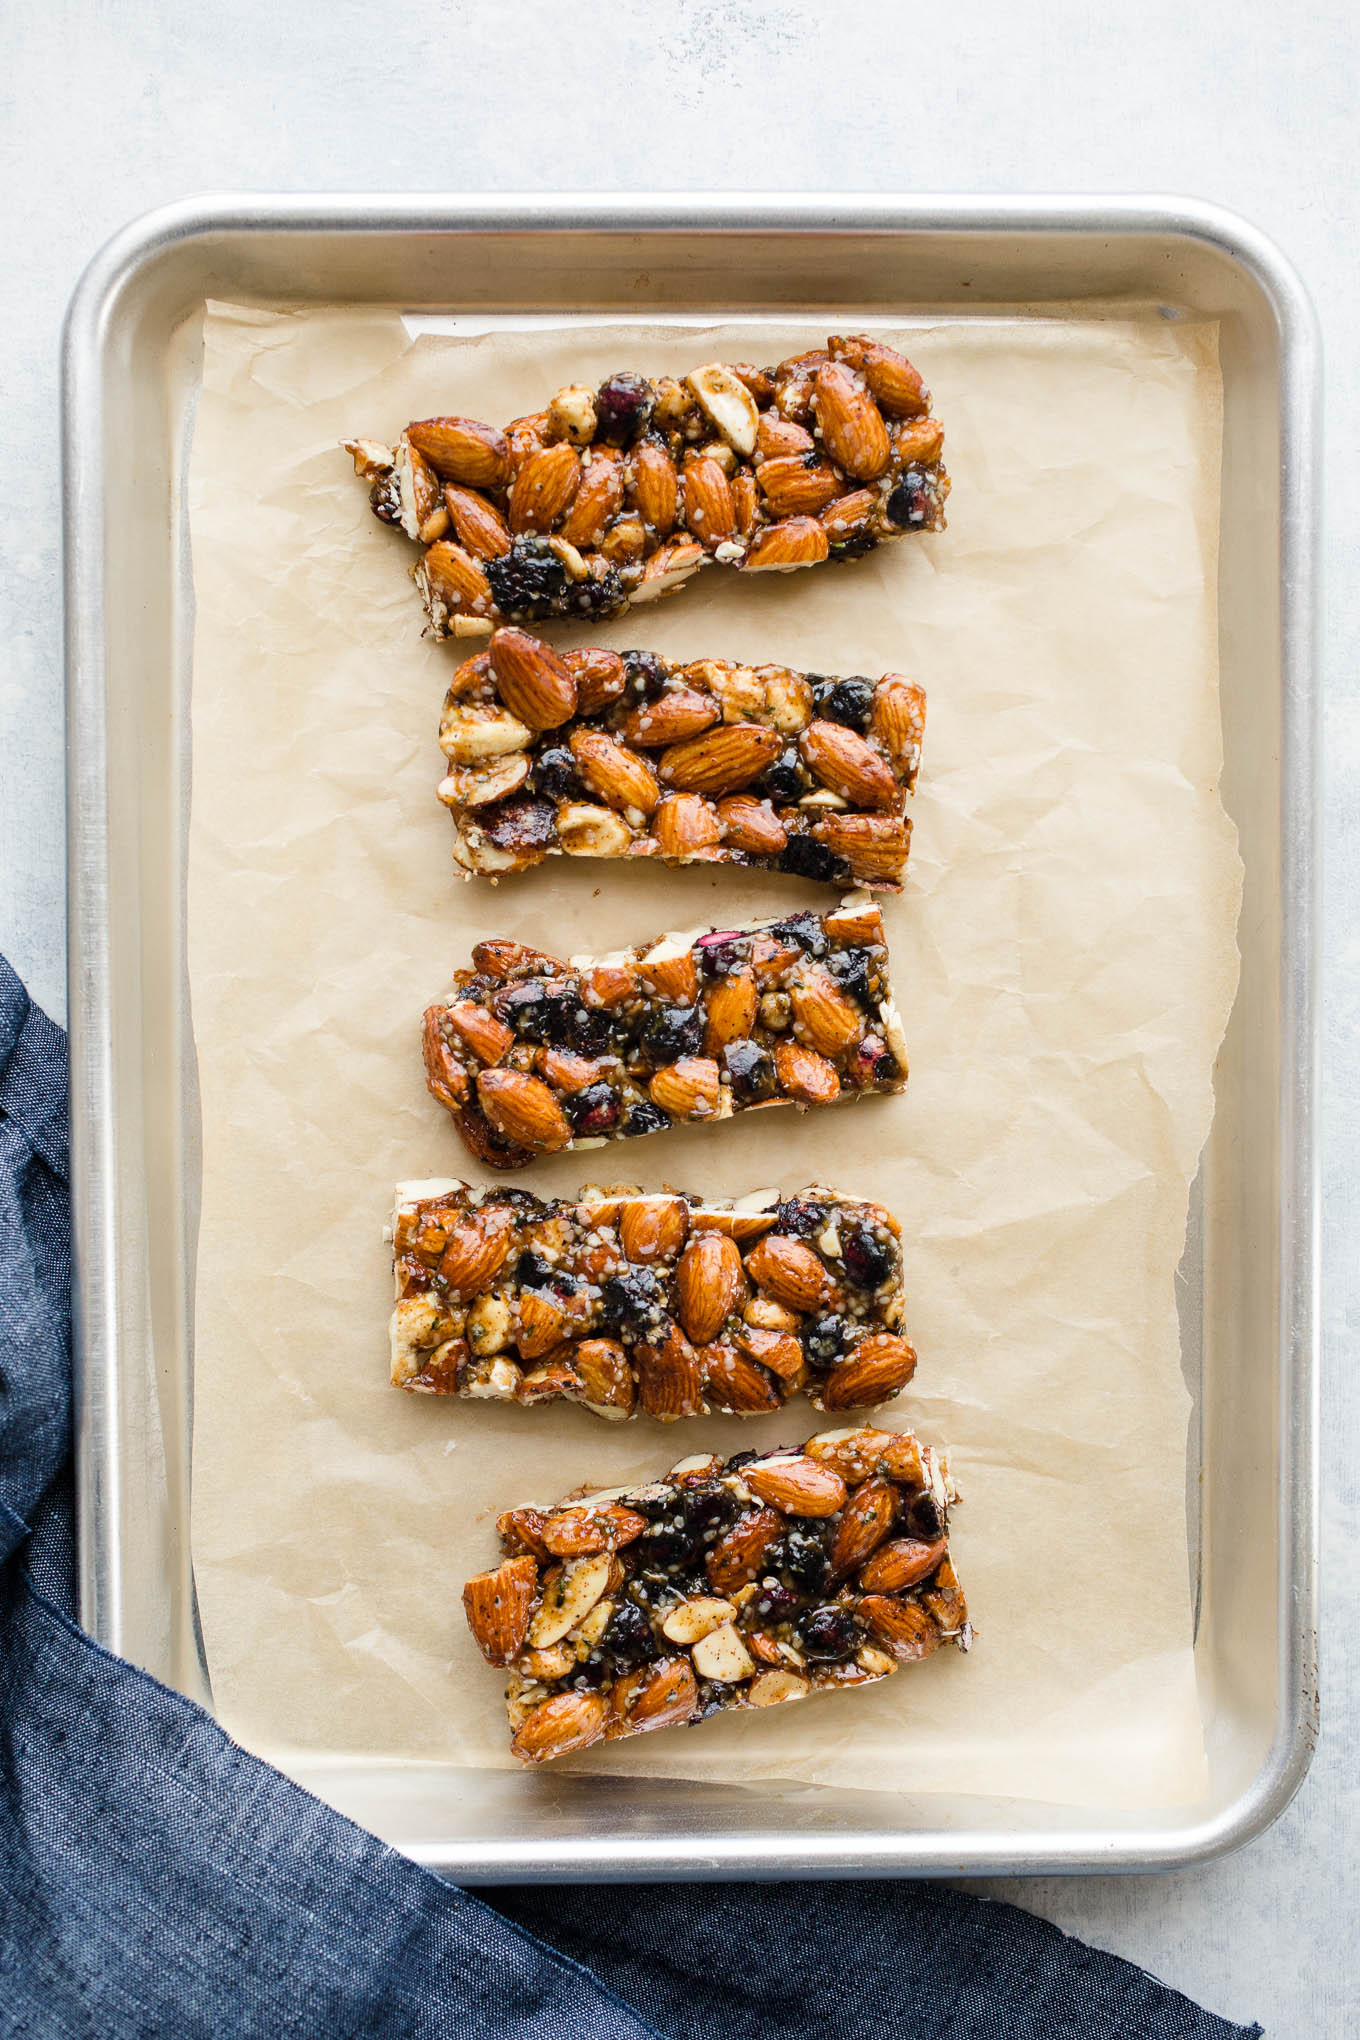 Blueberry Almond Granola Bars made with raw almonds, cashews, and hemp seeds, and bursting with dried blueberries. A healthy granola bars recipe made without refined sugar. Gluten-free, vegan.